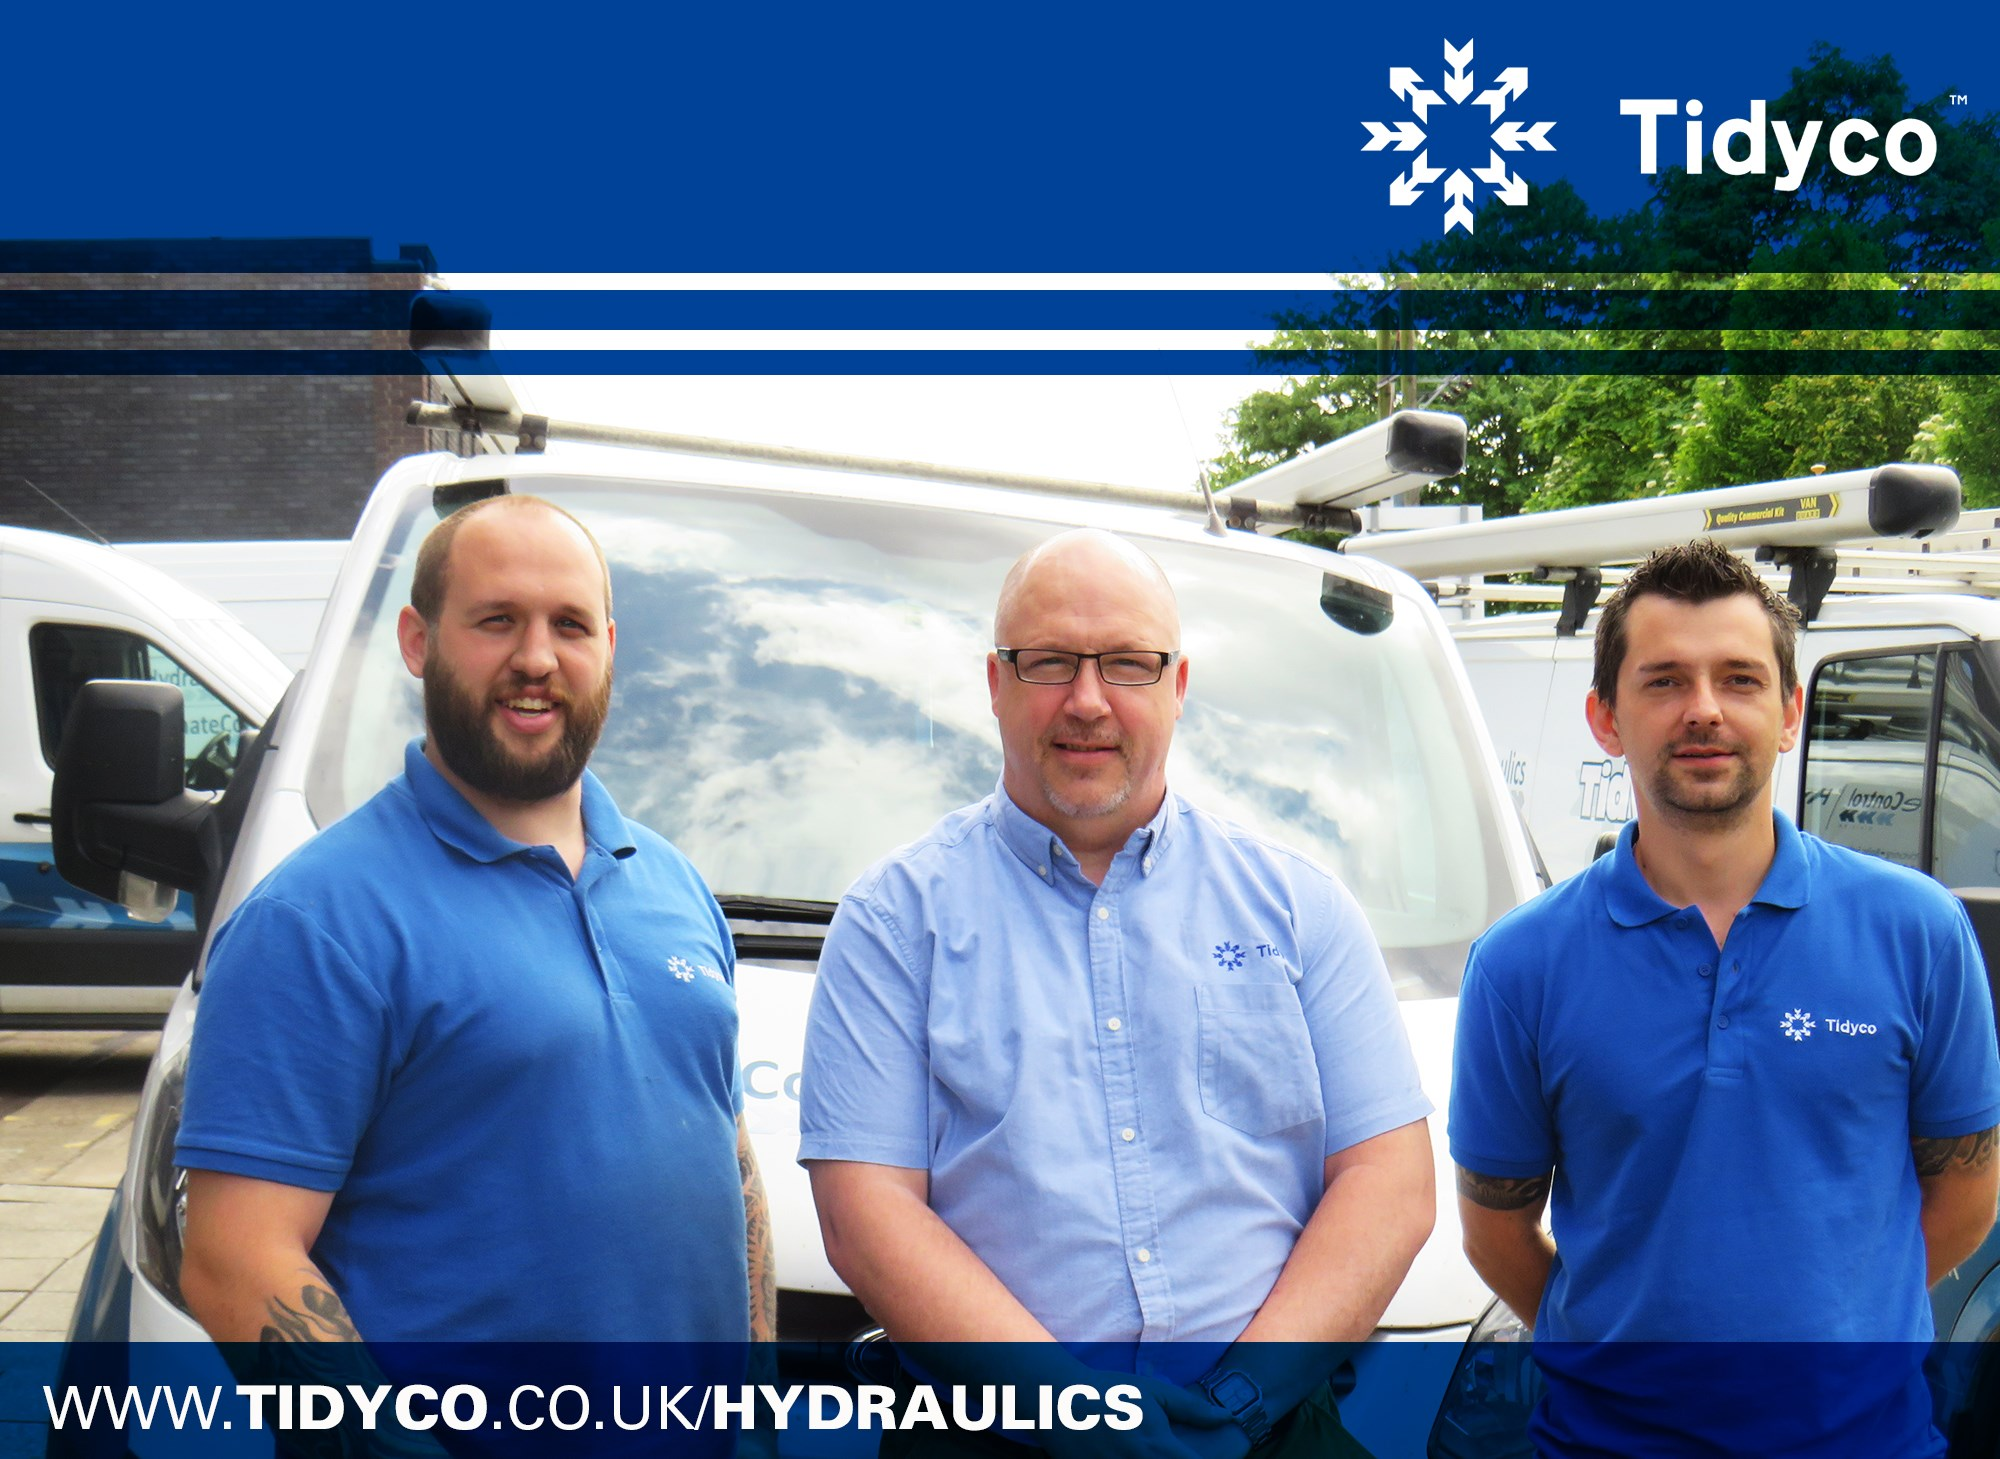 Tidyco Expands Hydraulics Division